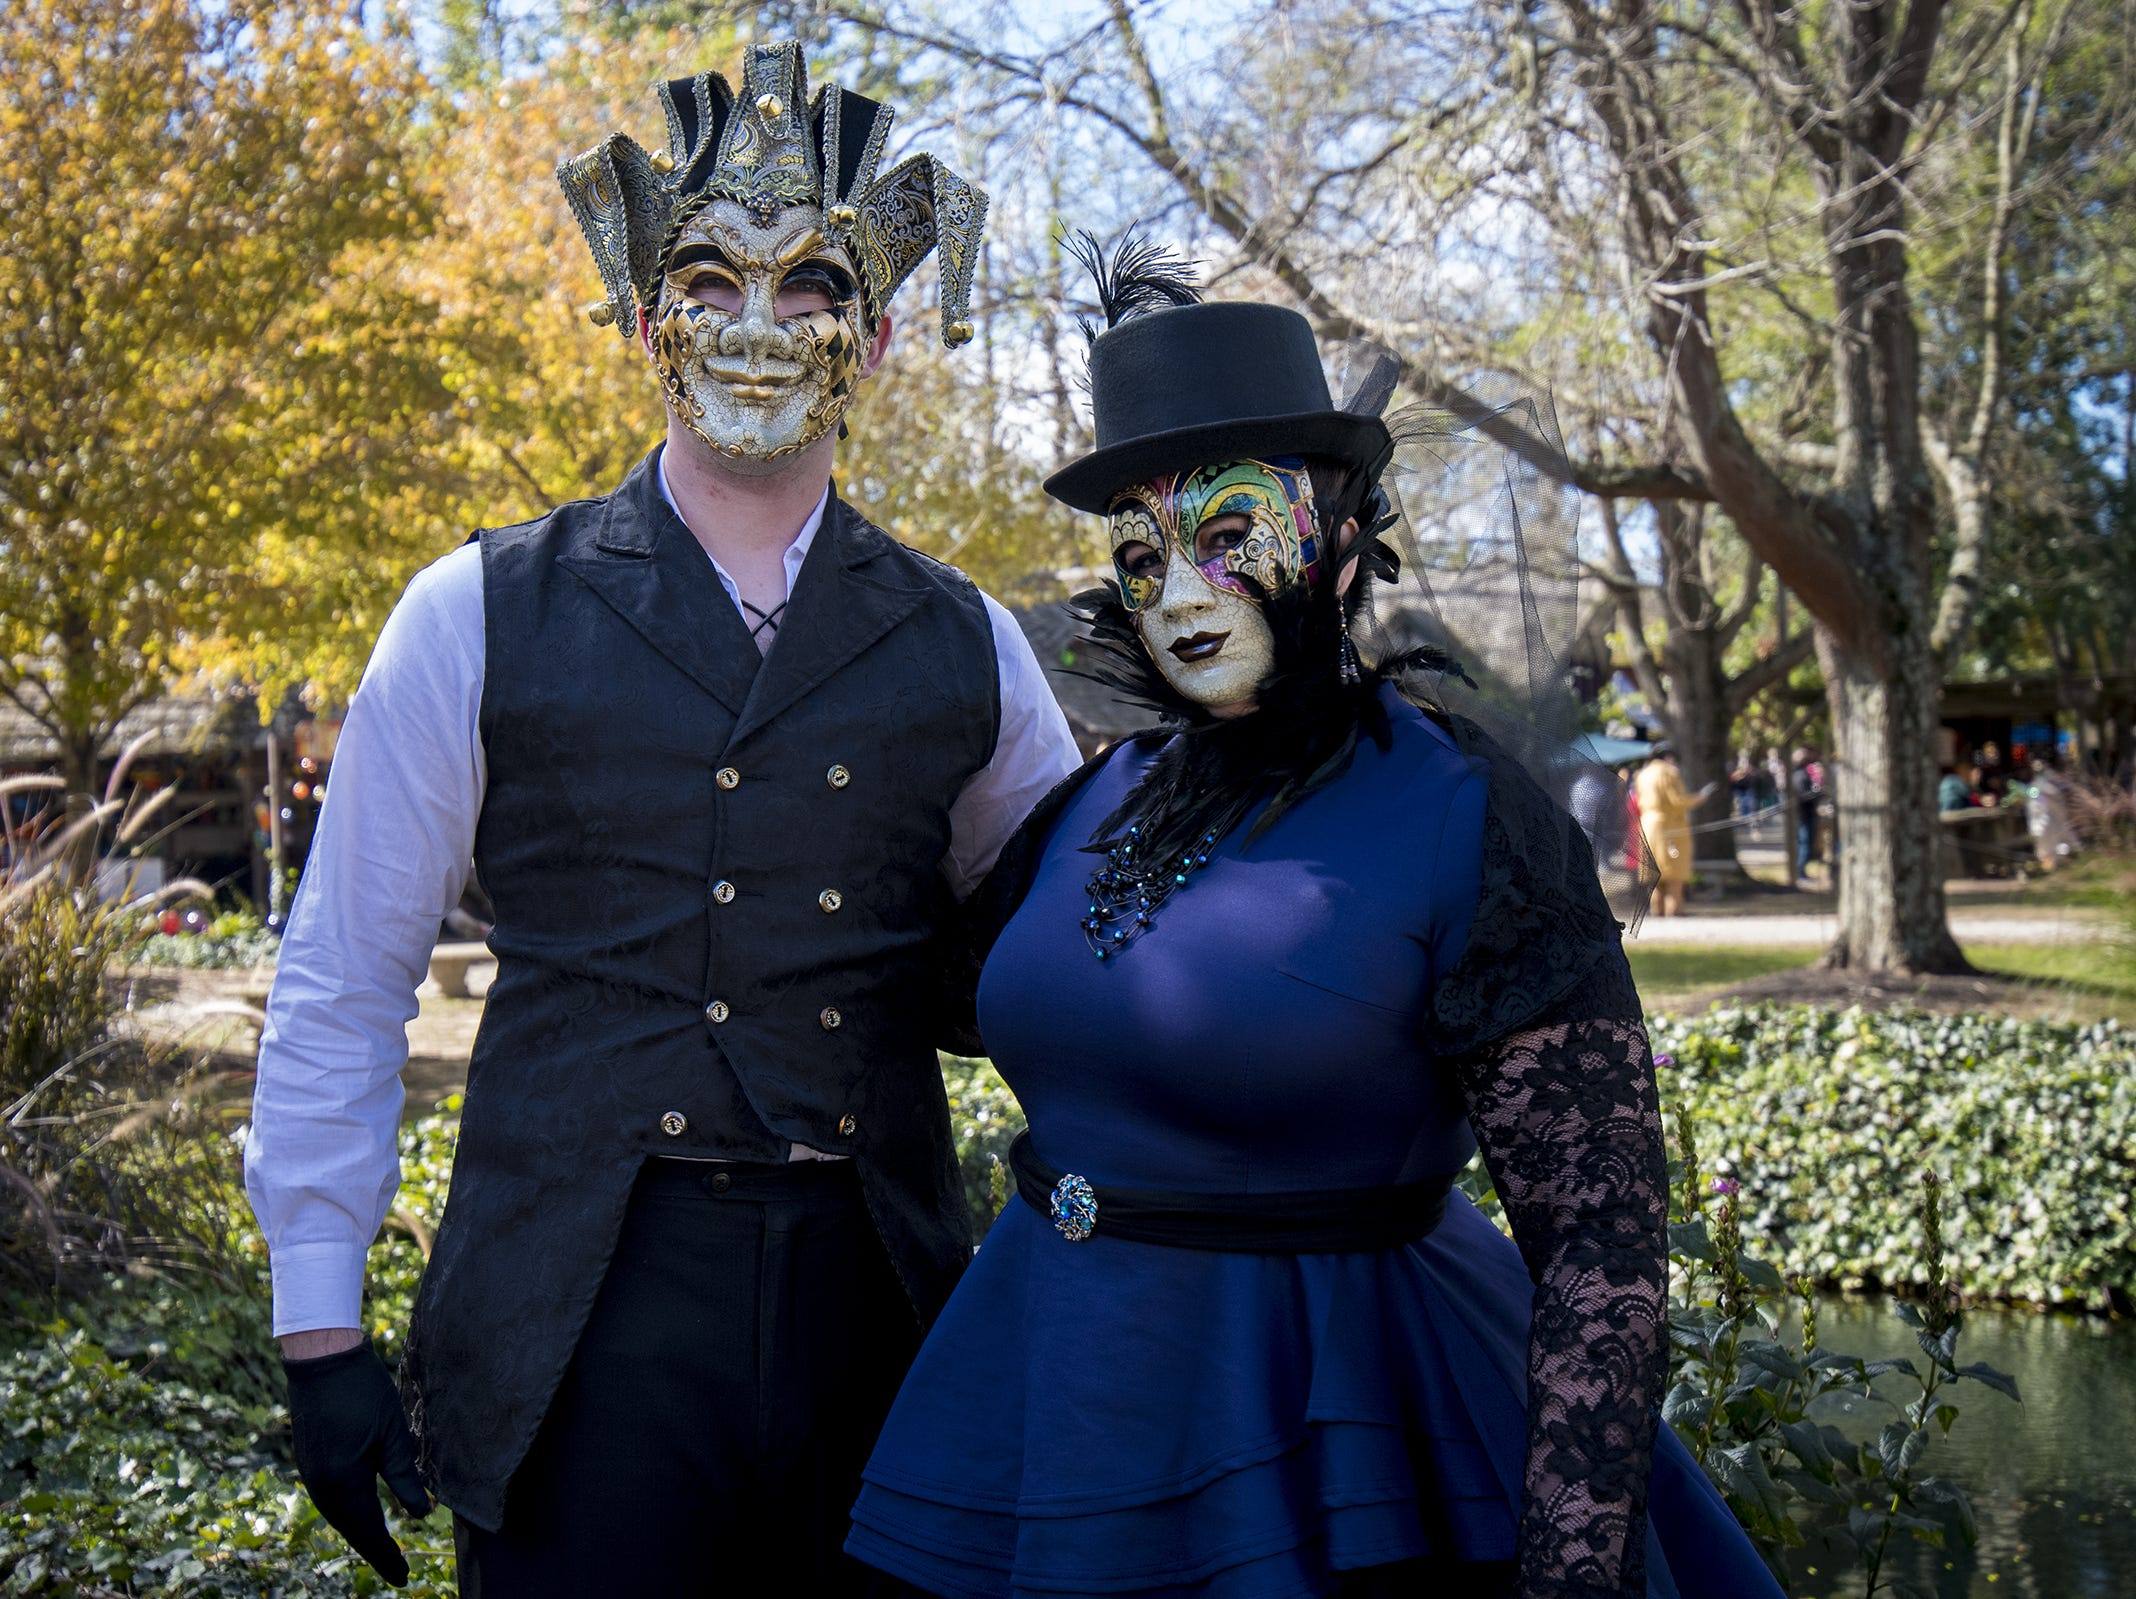 Brian and Wendy Jasper of Gallaway attend Romance Weekend at the Ohio Renaissance Festival Sunday, October 21, 2018 in Waynesville, Ohio.